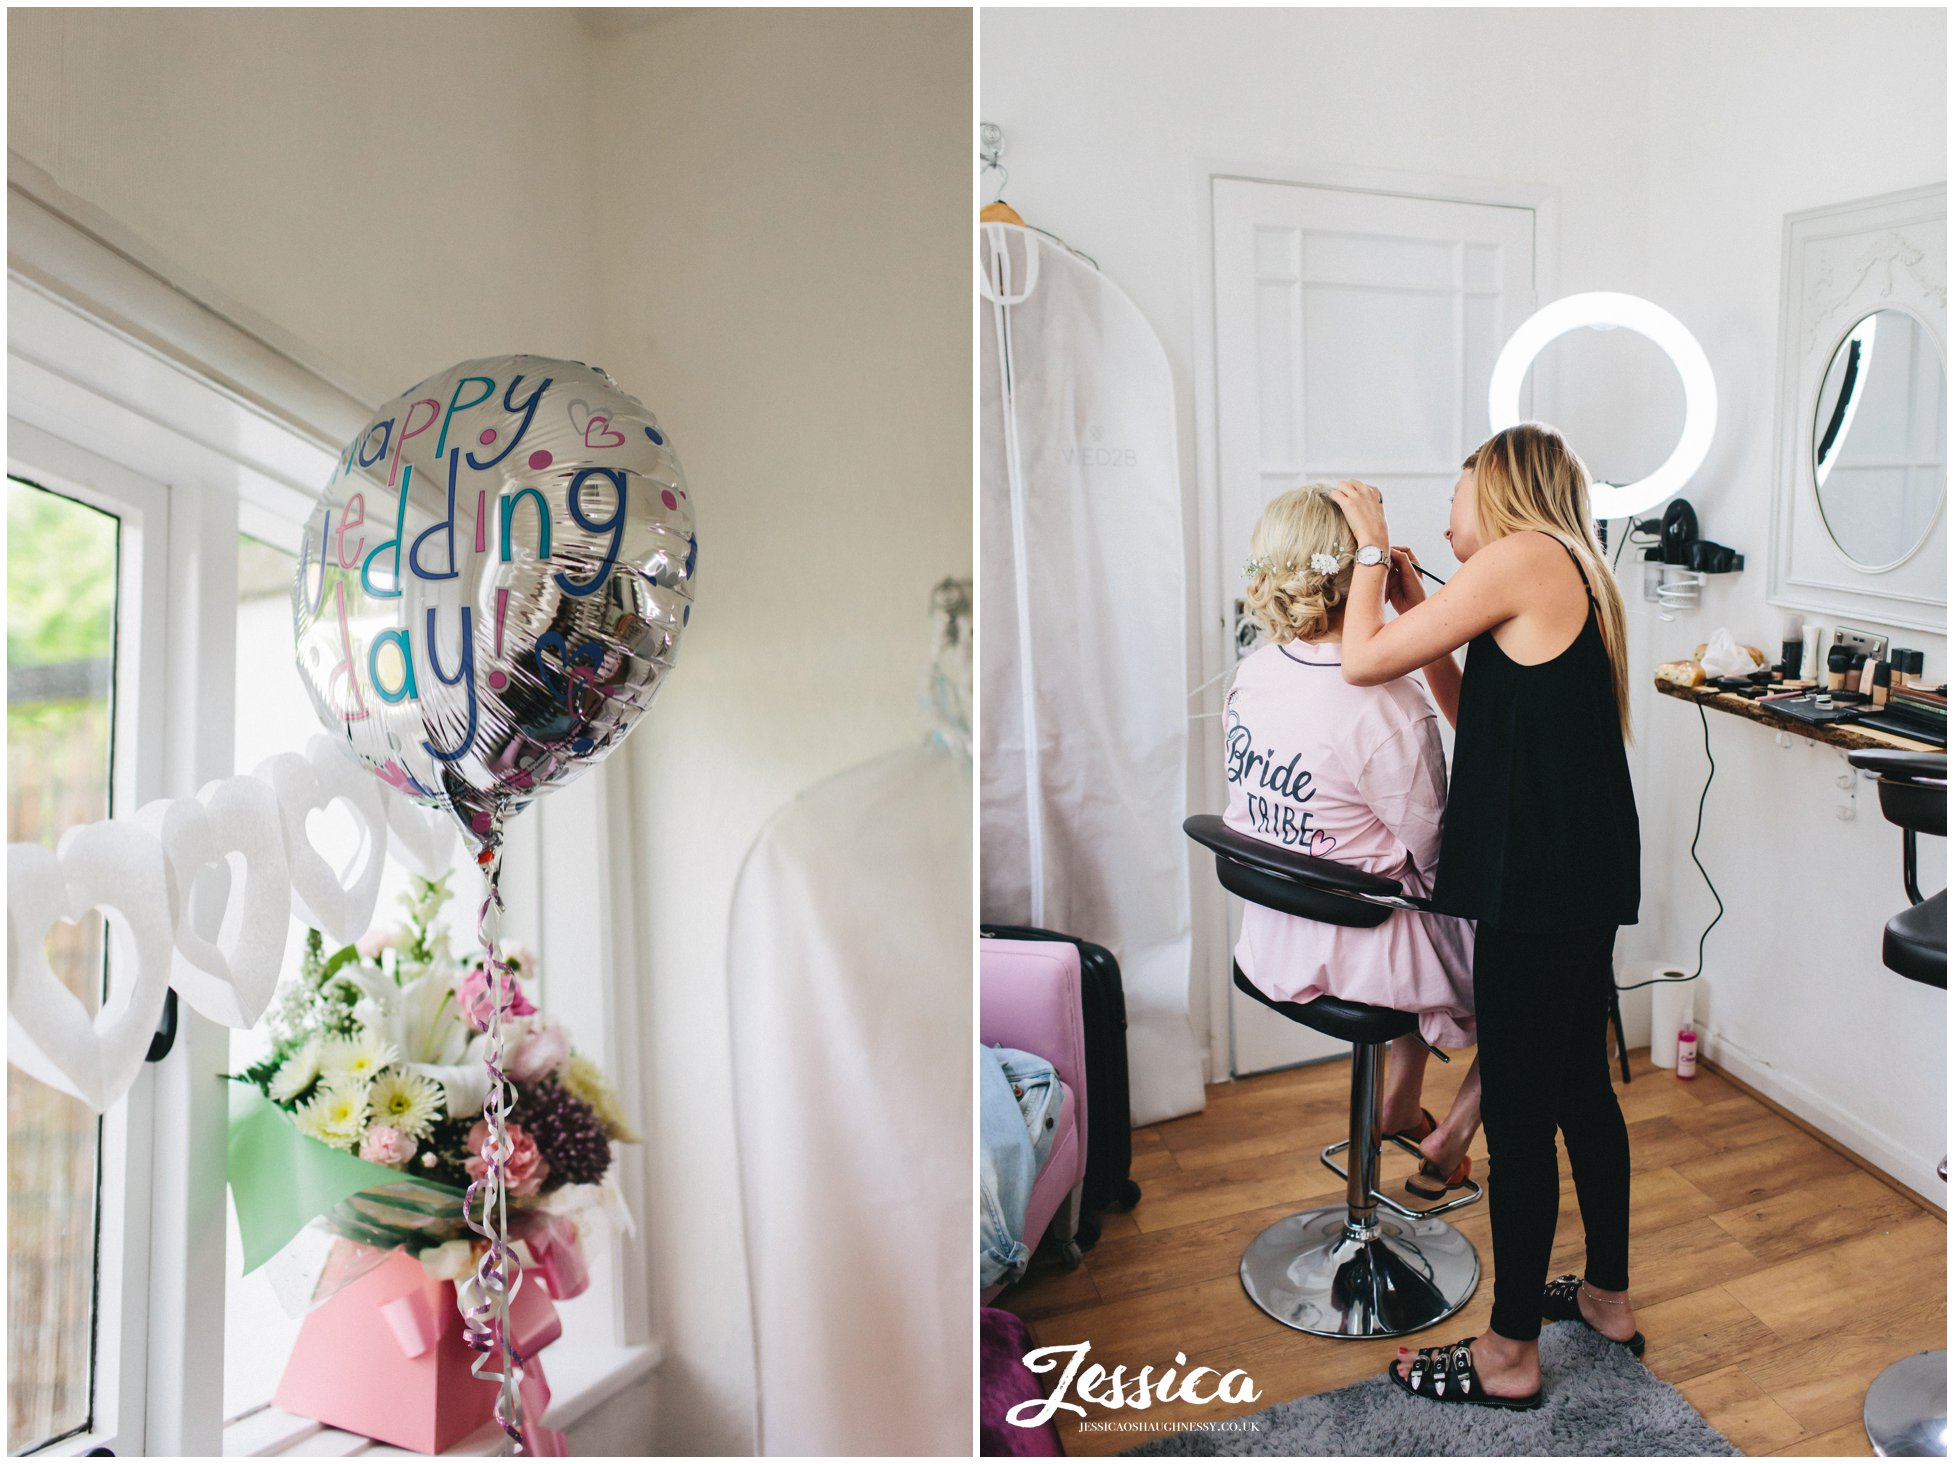 wedding day balloon decorates the bridal suite